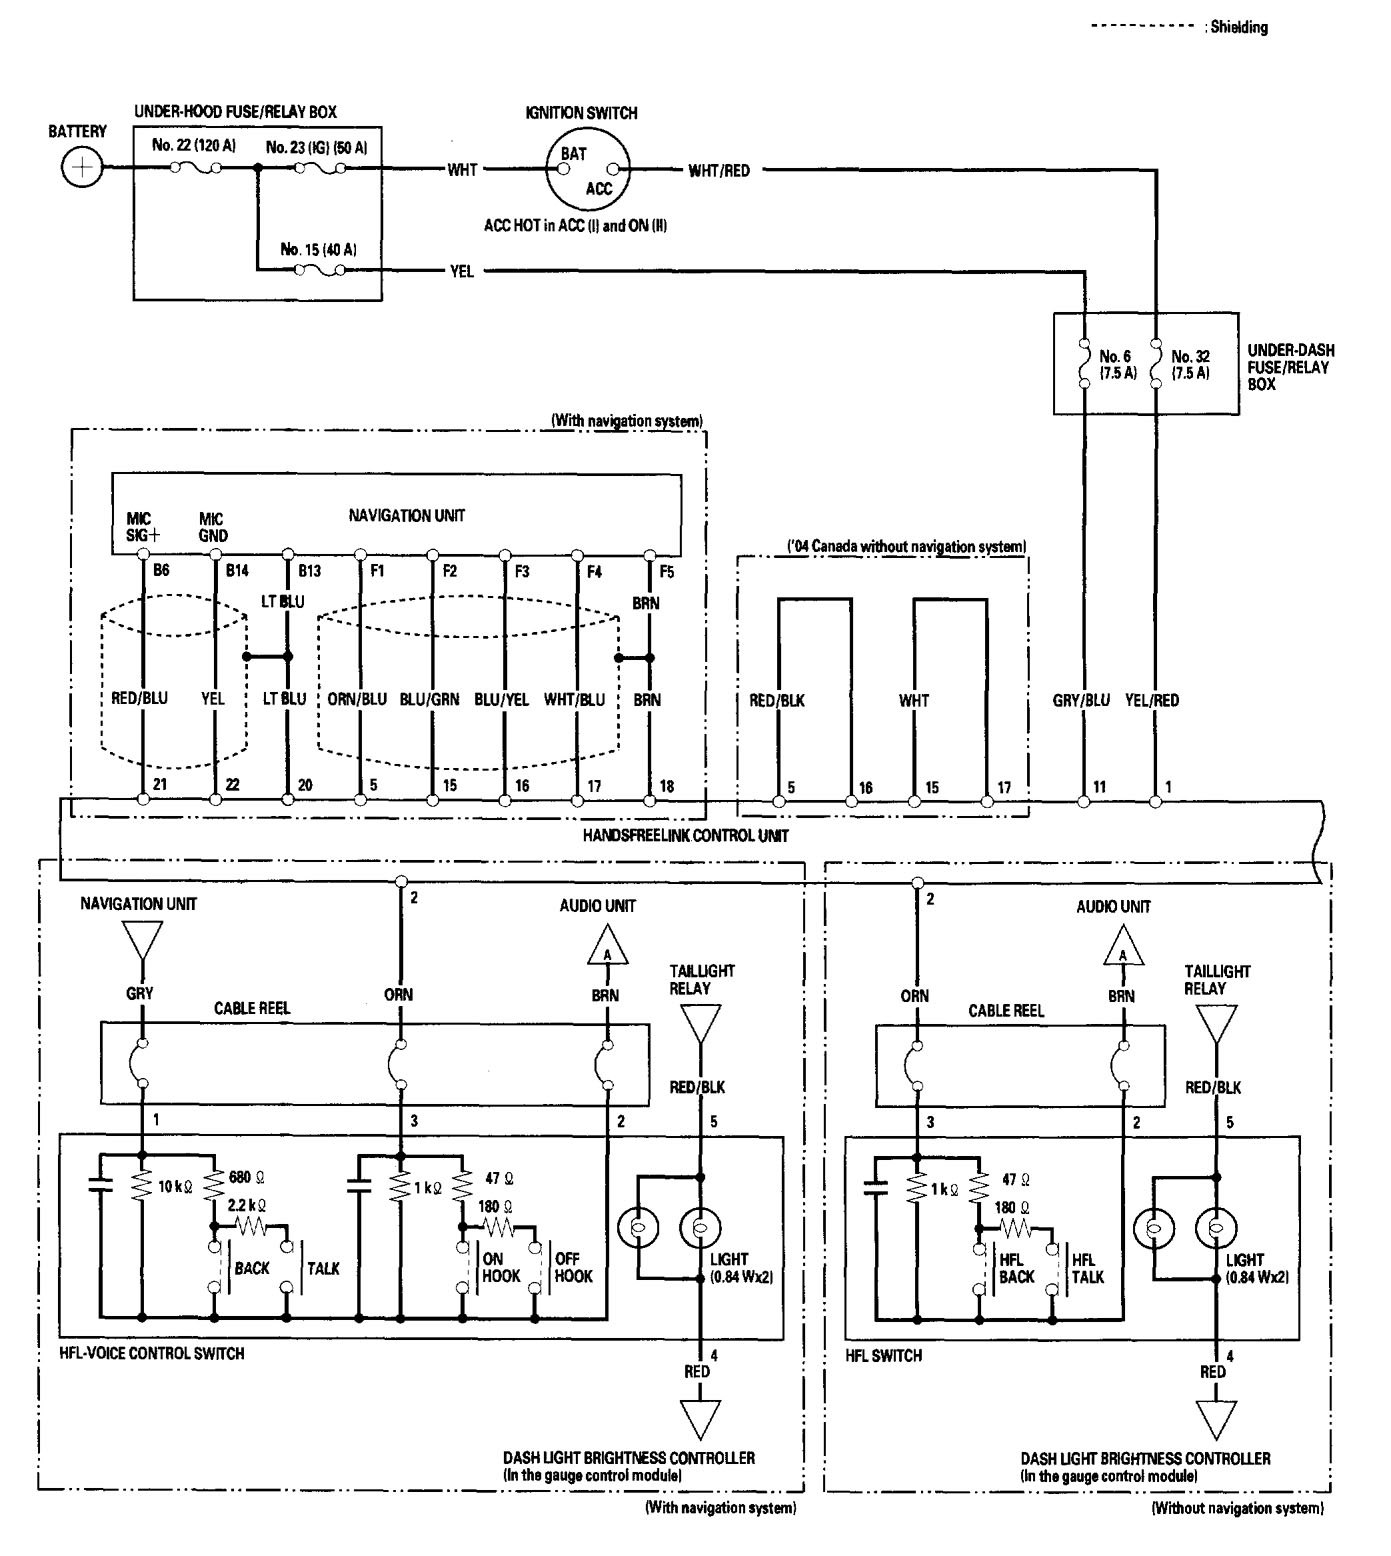 Acura Tl 2006 Wiring Diagrams Hands Free Link System 2007 Ford E 450 Diagram Picture Part 1